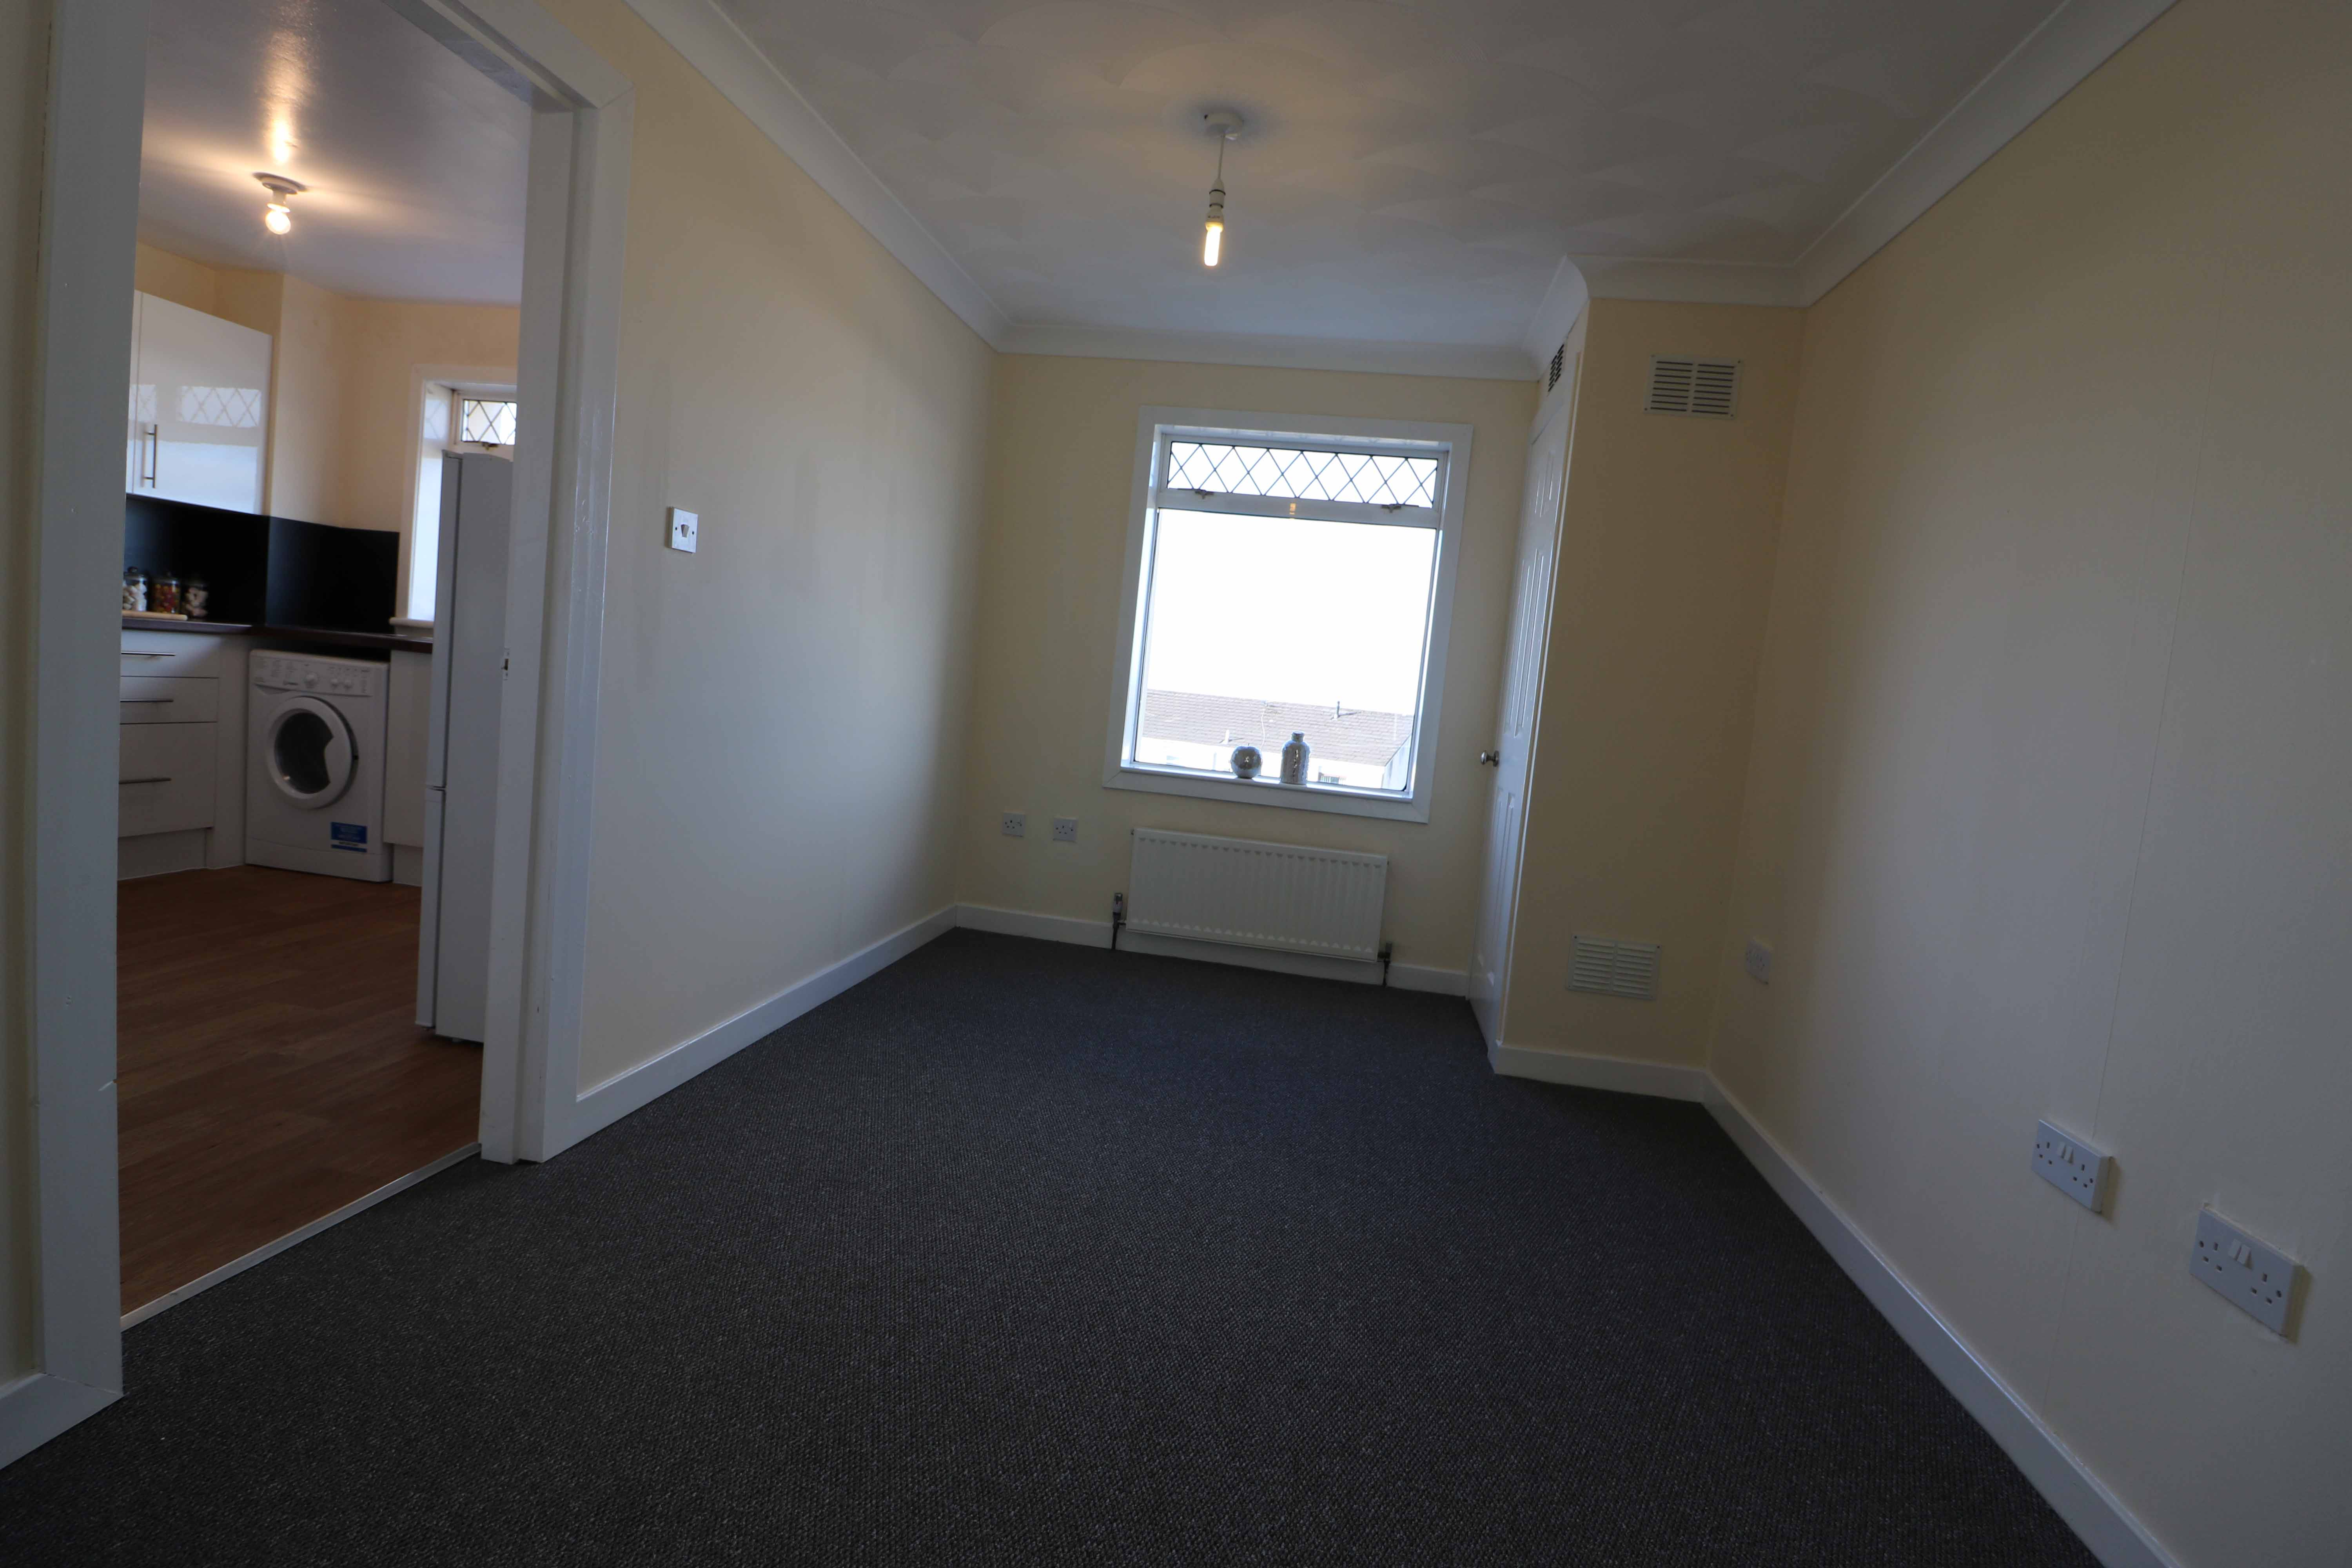 3 Bedroom End Terrace House Airdrie Arranview Street